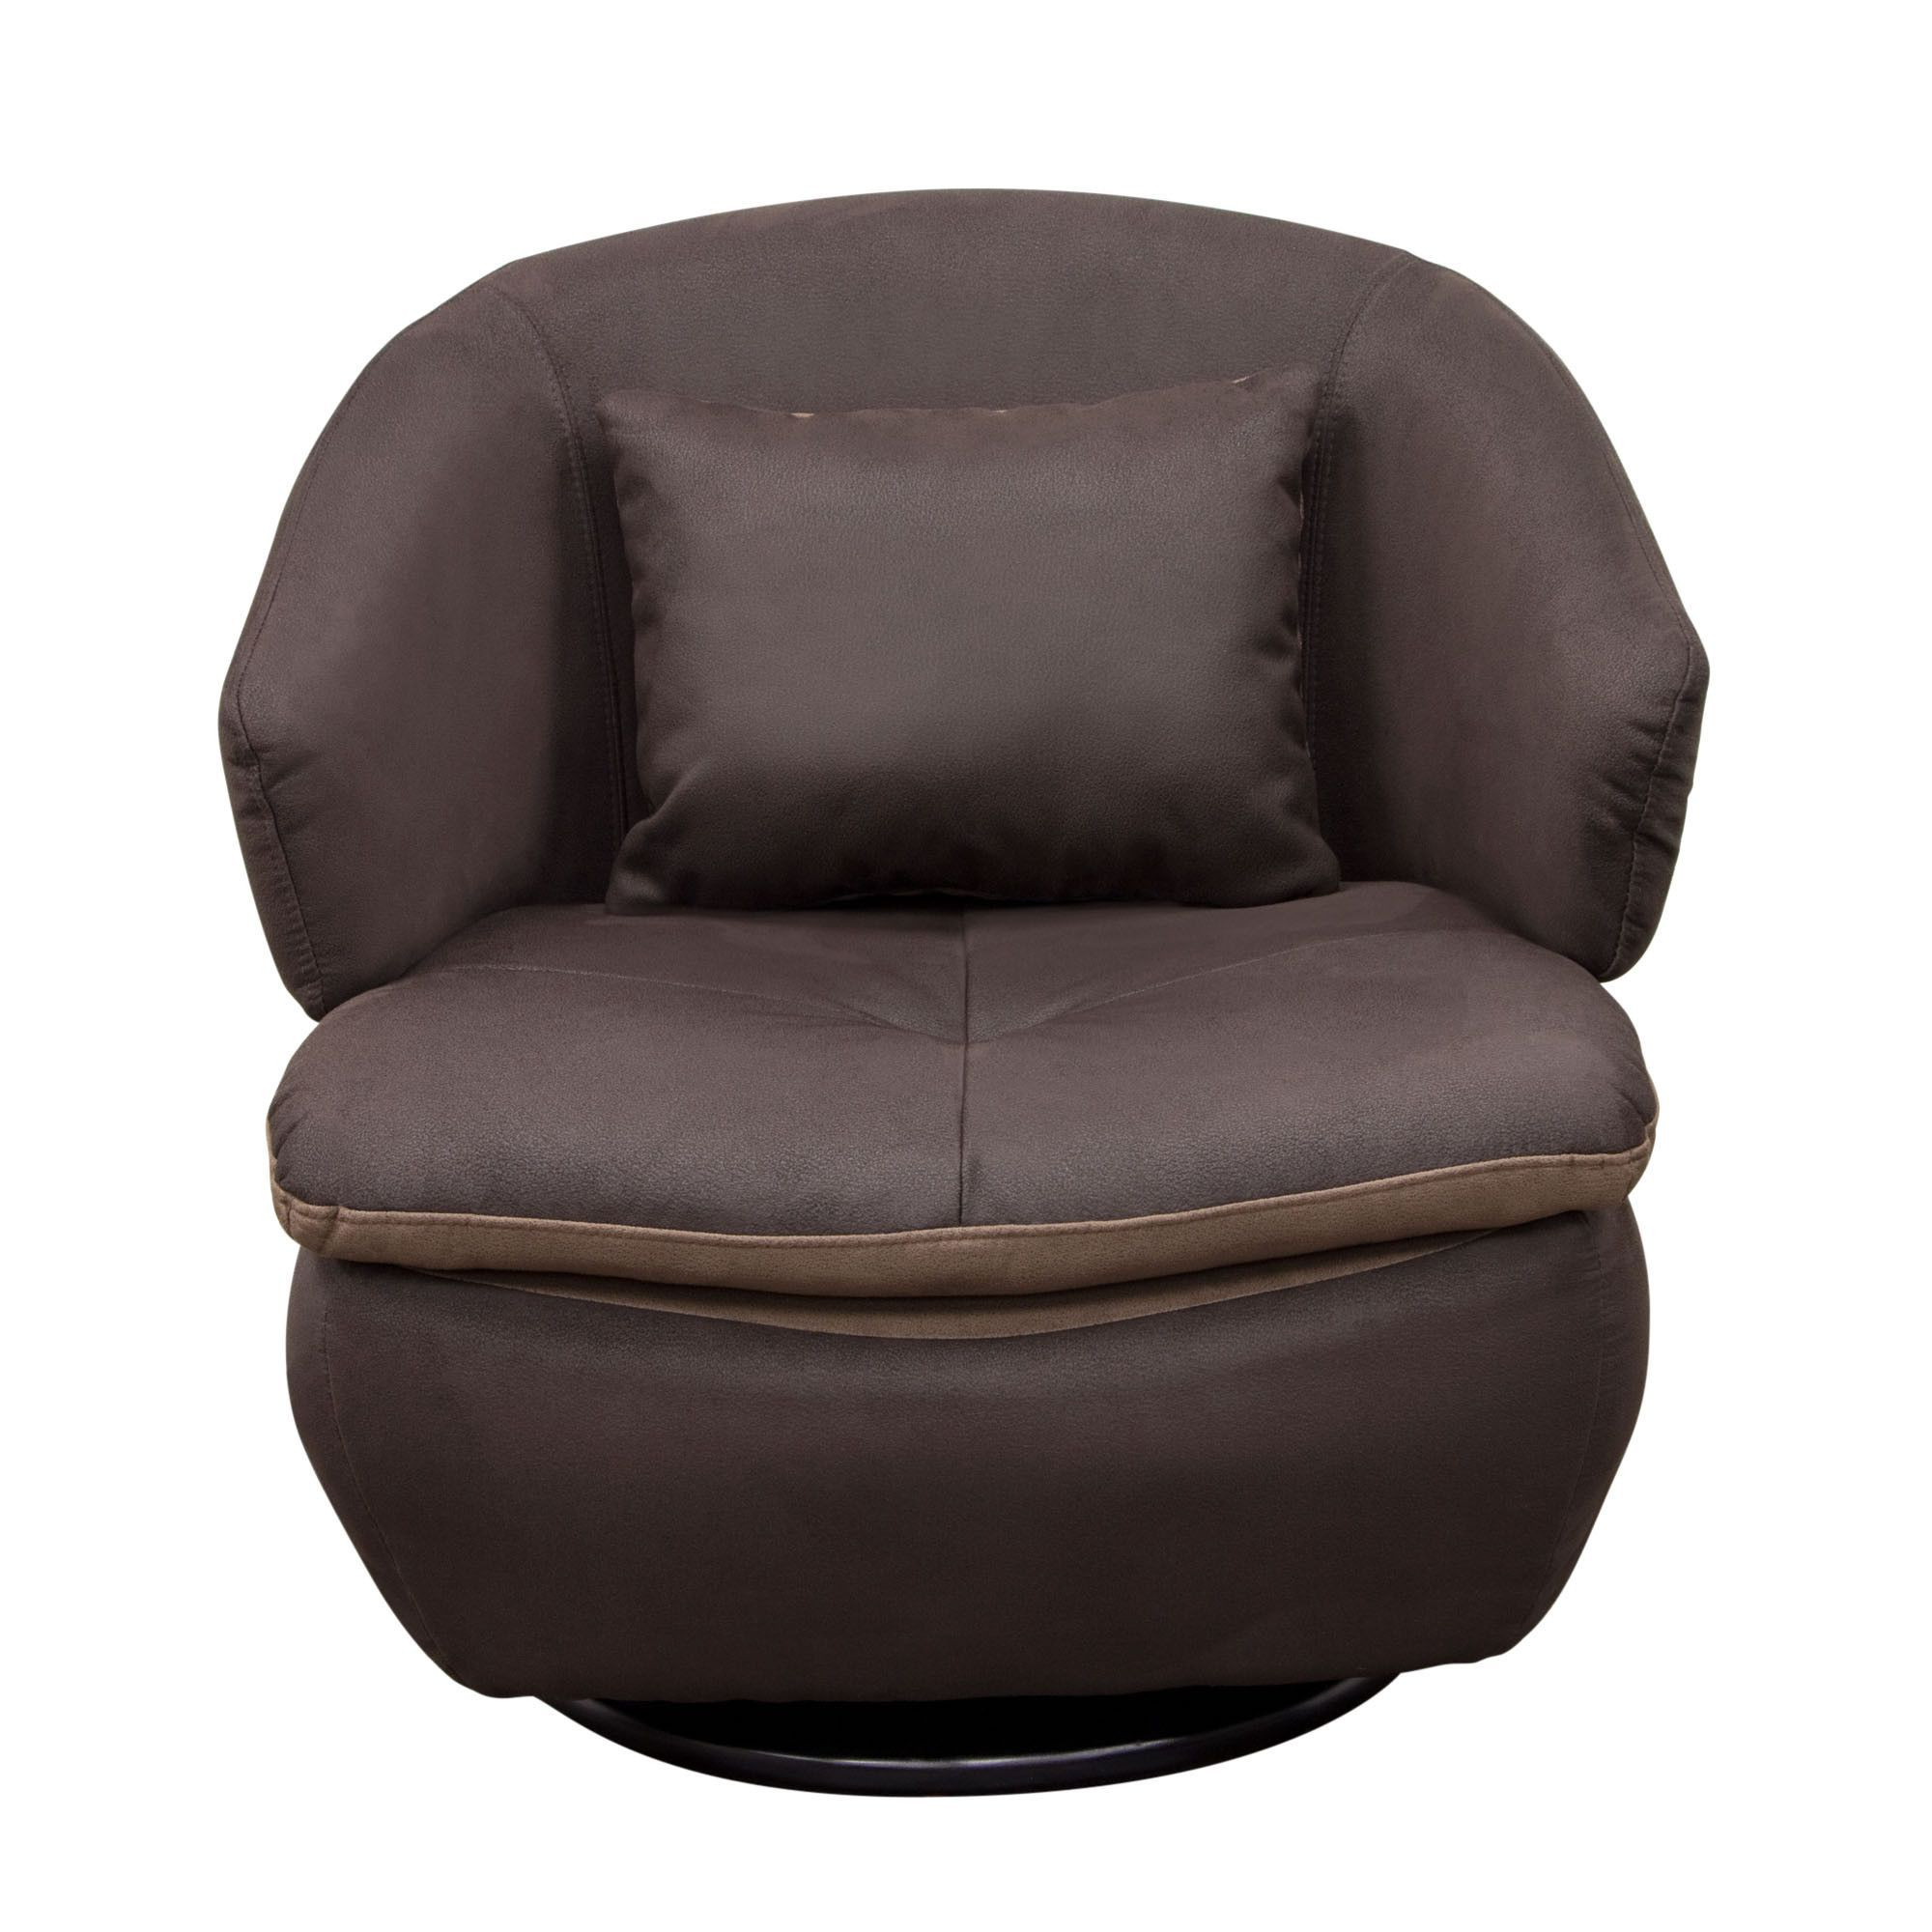 Most Recent Rio Swivel Accent Chair In Brown Fabricdiamond Sofa (View 2 of 20)